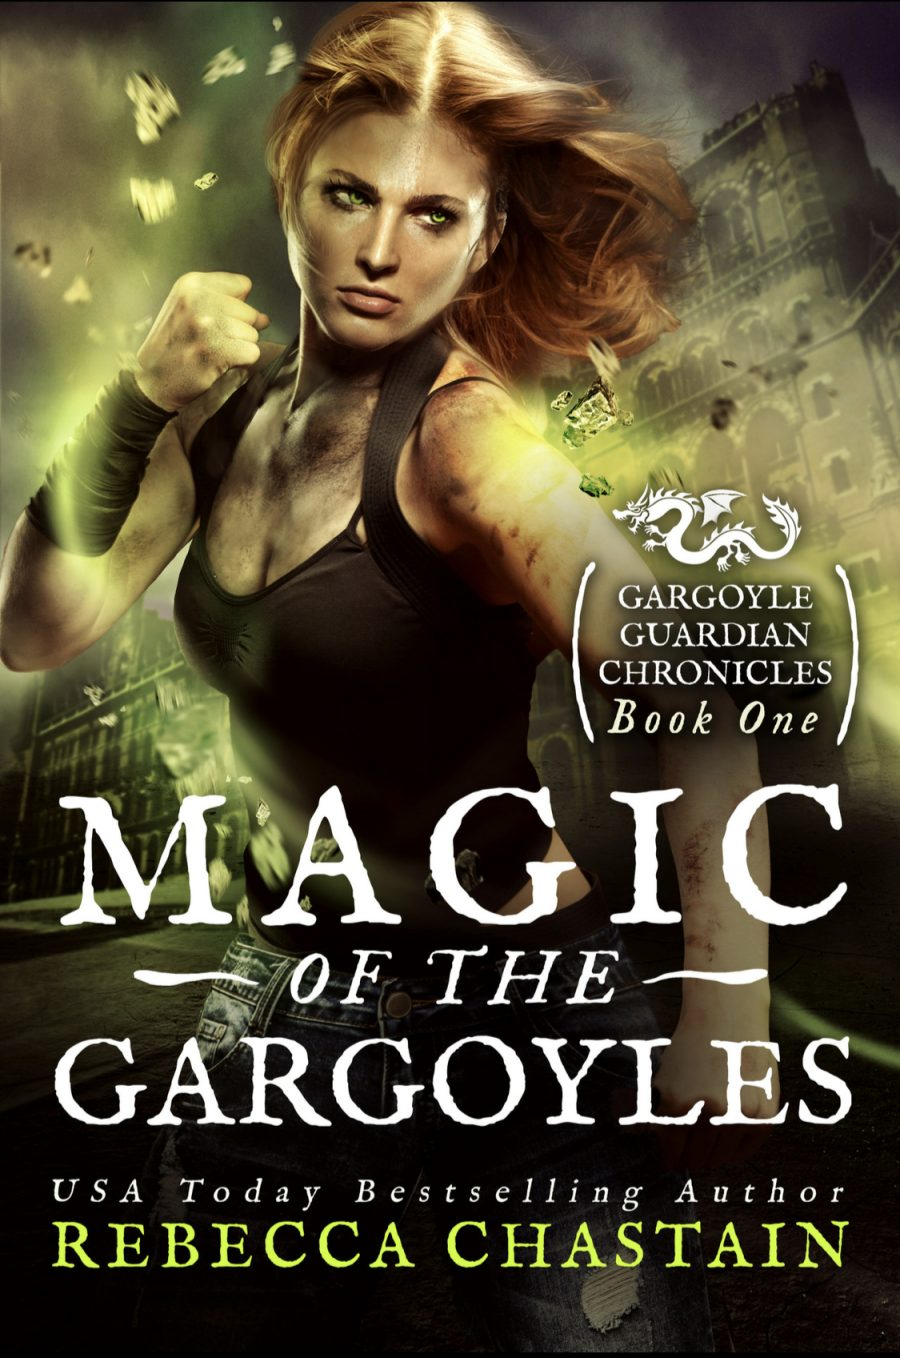 Magic of The Gargoyles (Gargoyle Guardian Chronicles - Book 1) by Rebecca Chastain - A Book Review #BookReview #UrbanFantasy #Novella #OlderRelease #4Stars #SeriesComplete #FreeBook